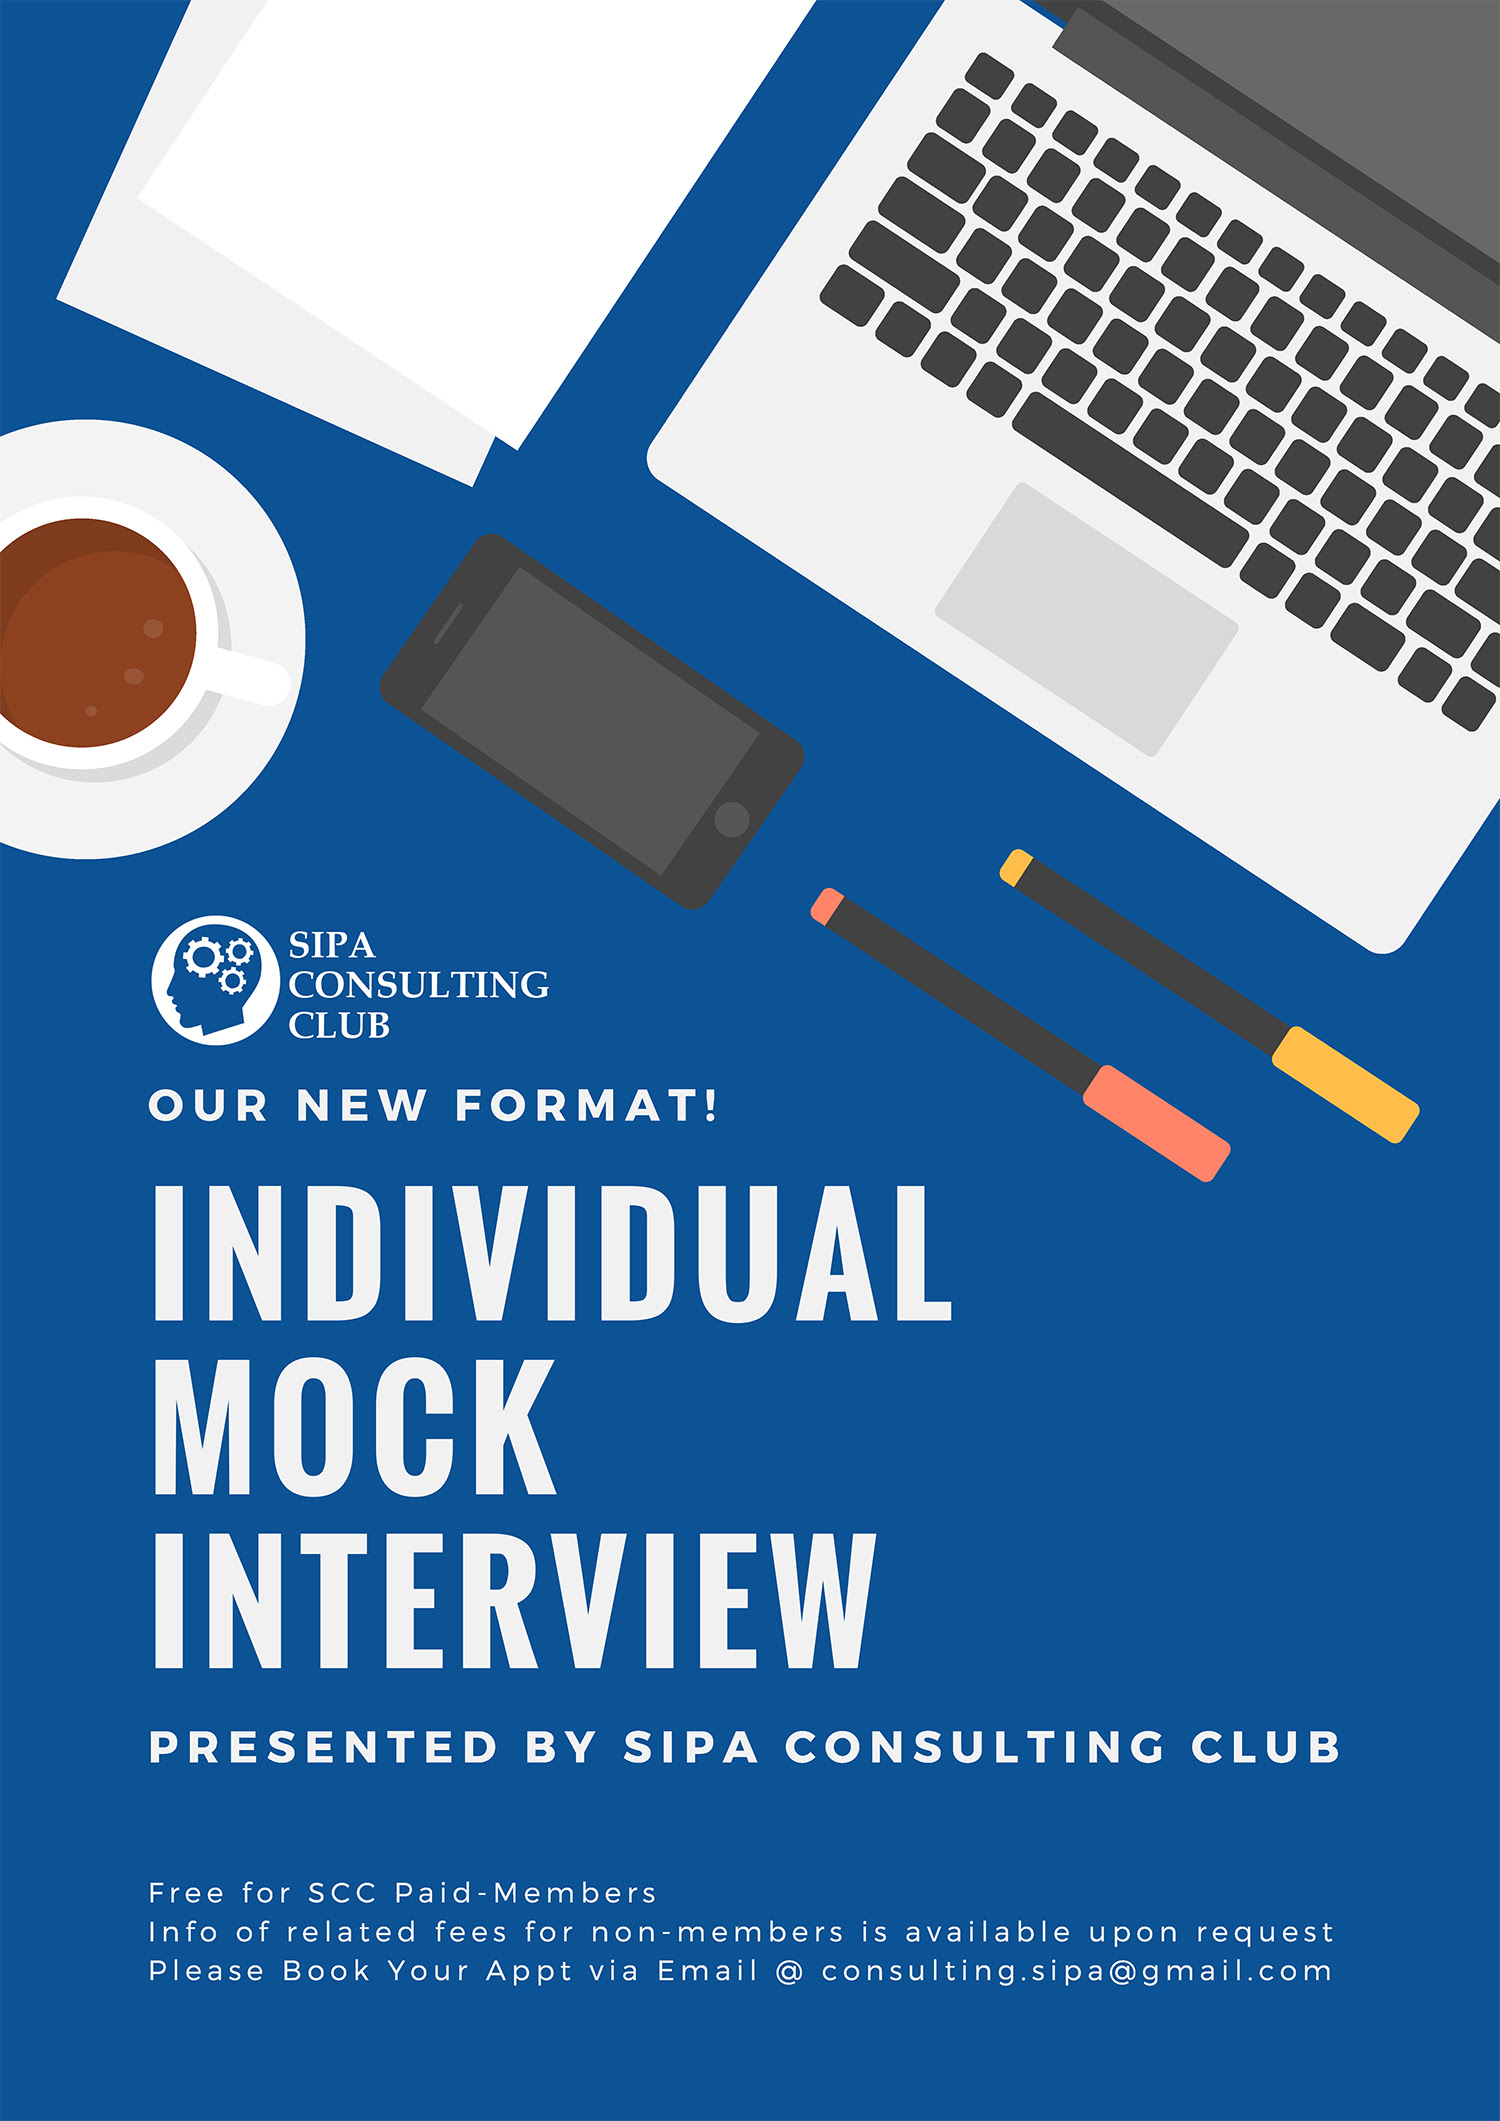 individual mock interview poster.jpg